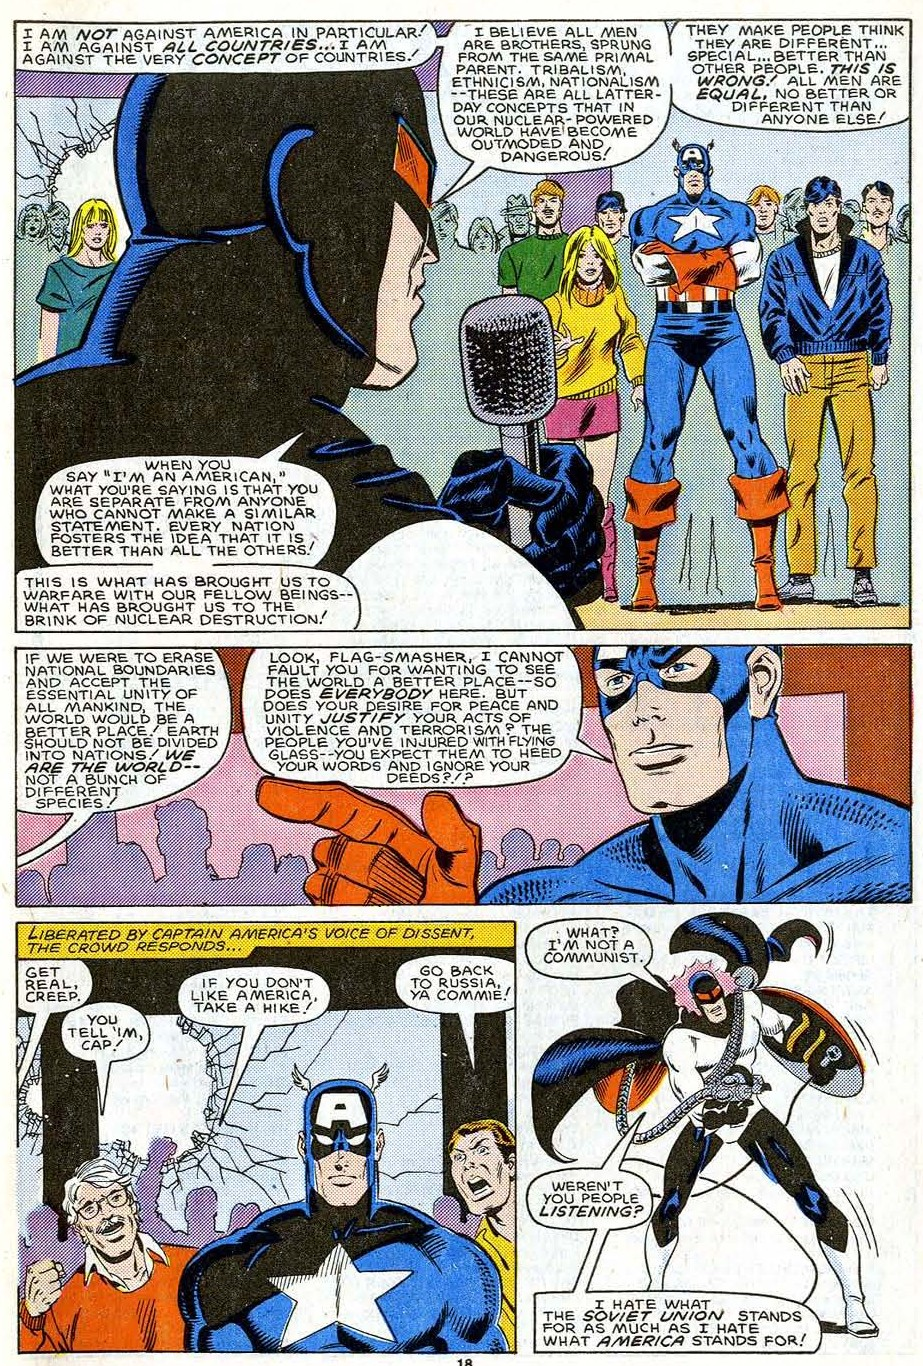 The Marvel Universe general public: both ineffectual AND ignorant.